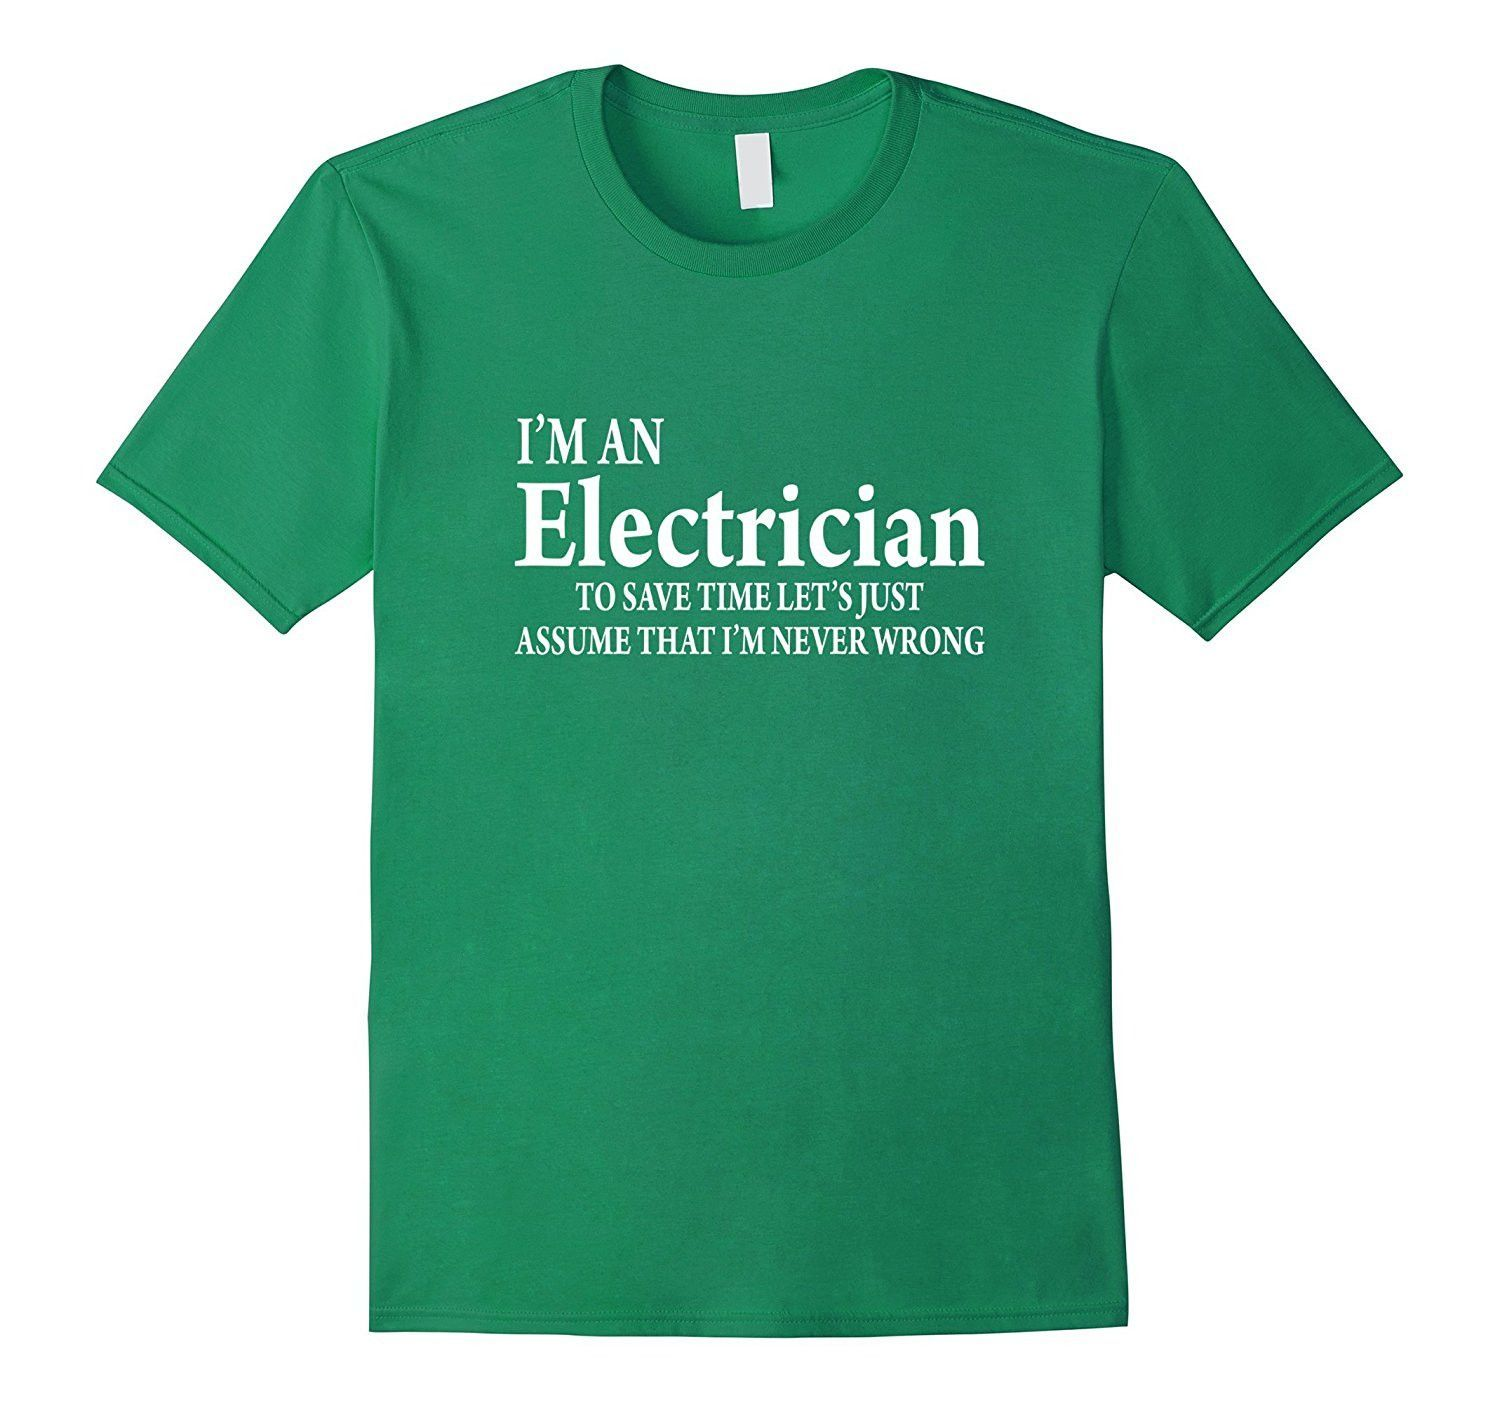 Electrician Quotes Funny Electrician Quotes Tshirt Electrician Job Title Gift